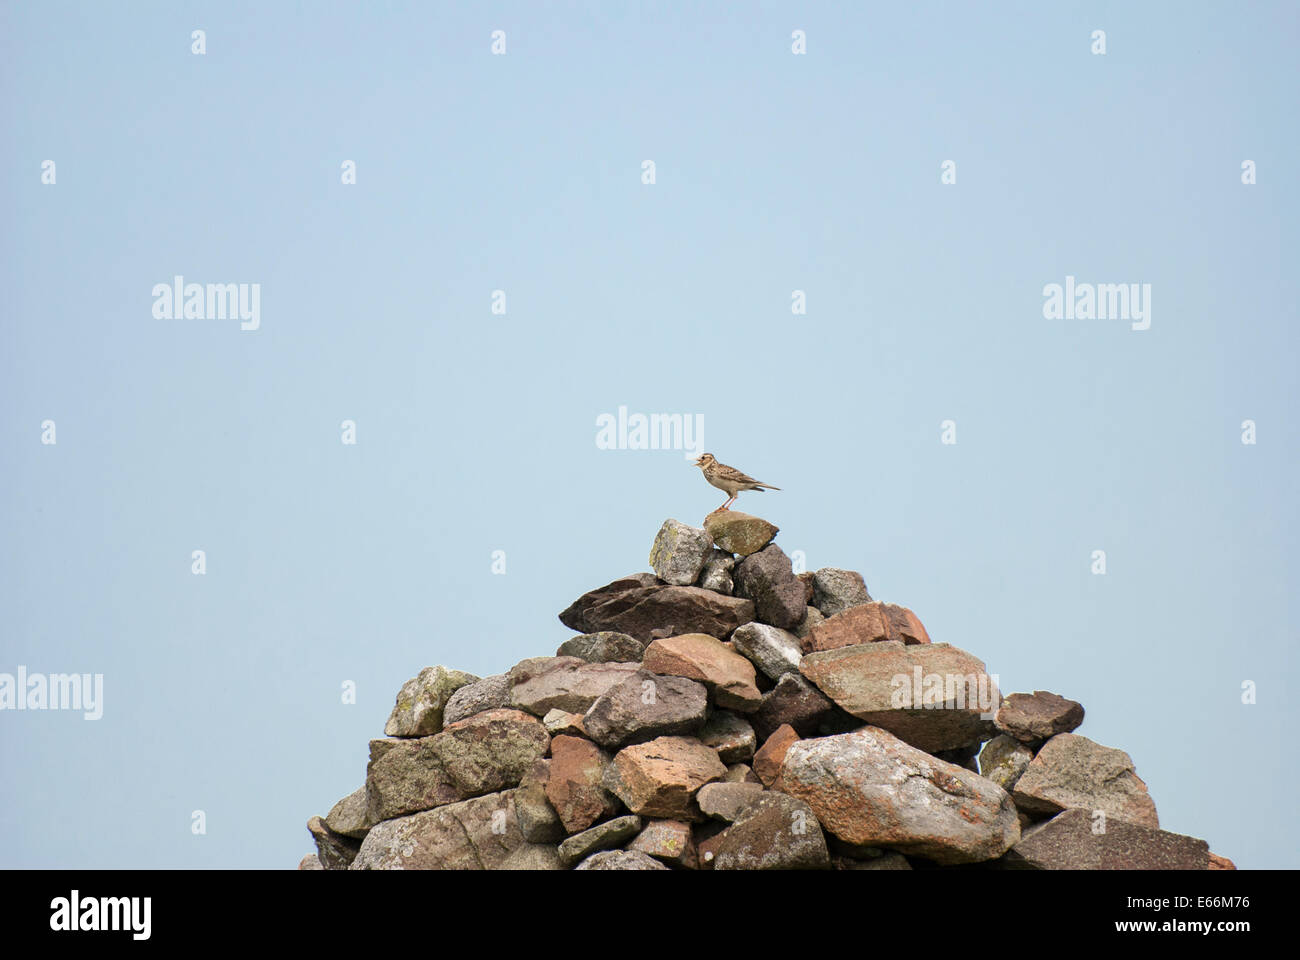 Skylark, perched and singing on top of of a stone Cairn, Northumberland, UK. - Stock Image